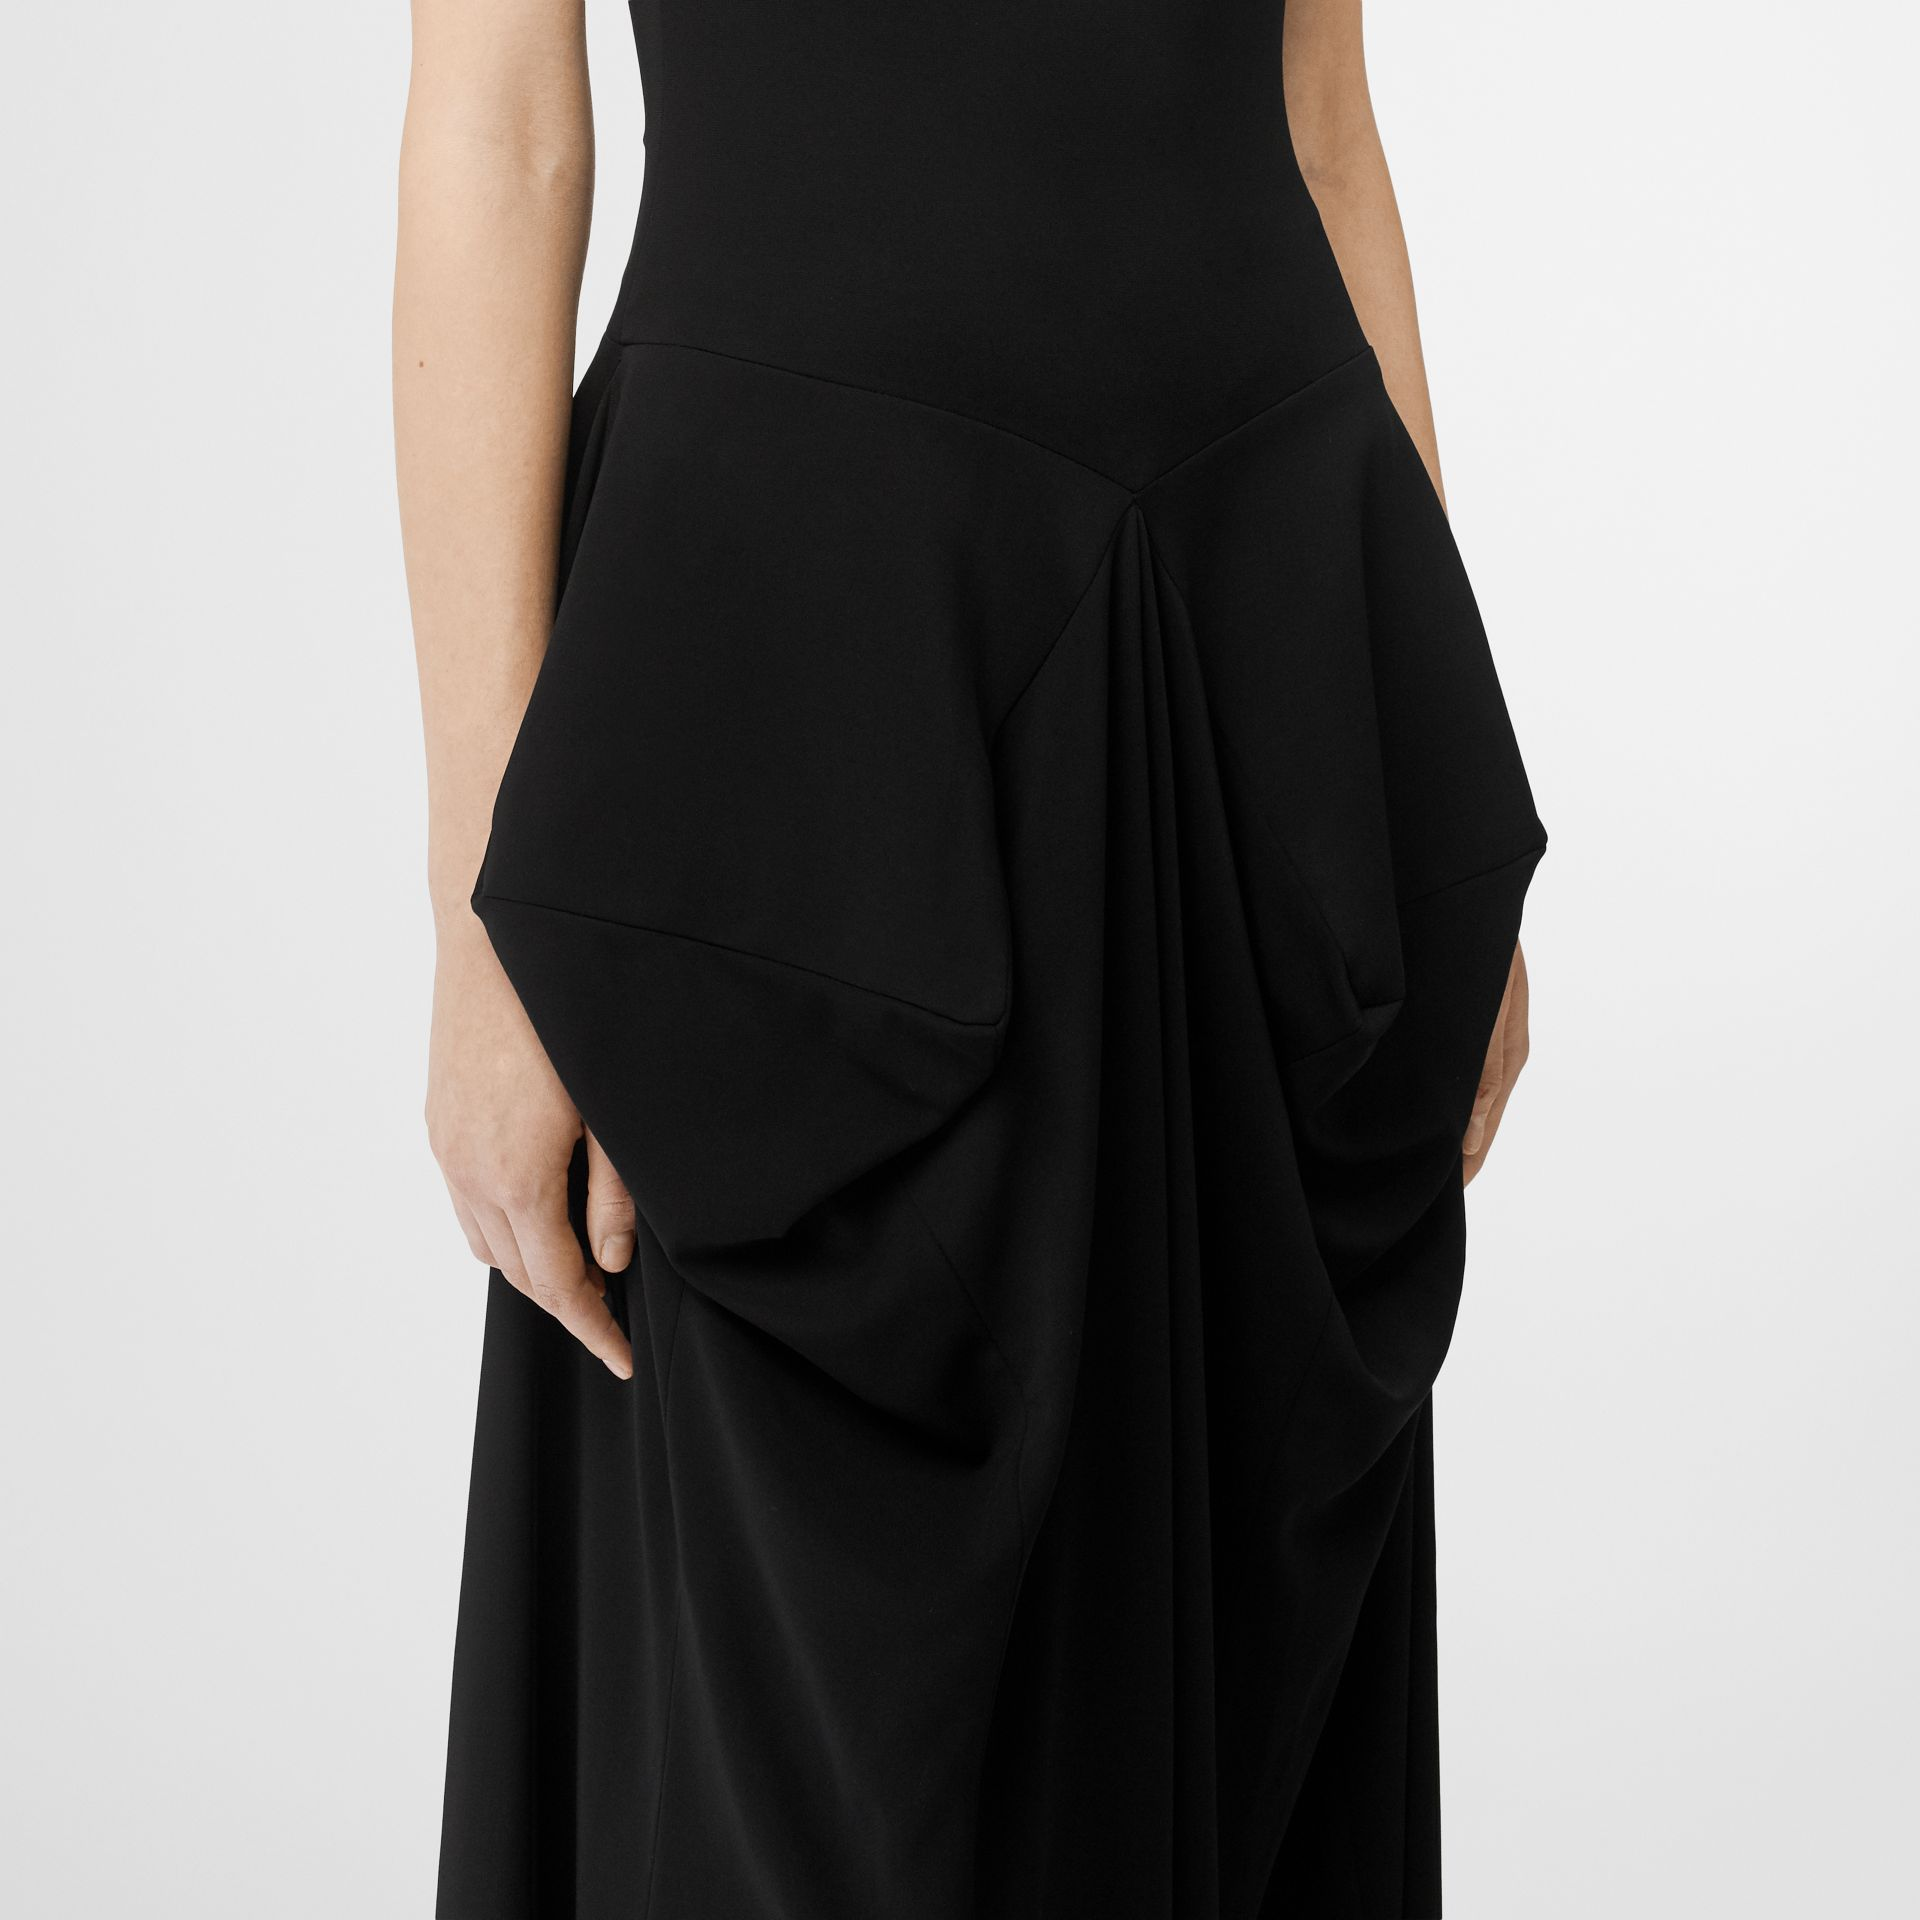 Crystal Detail Stretch Jersey Gown in Black - Women | Burberry - gallery image 7